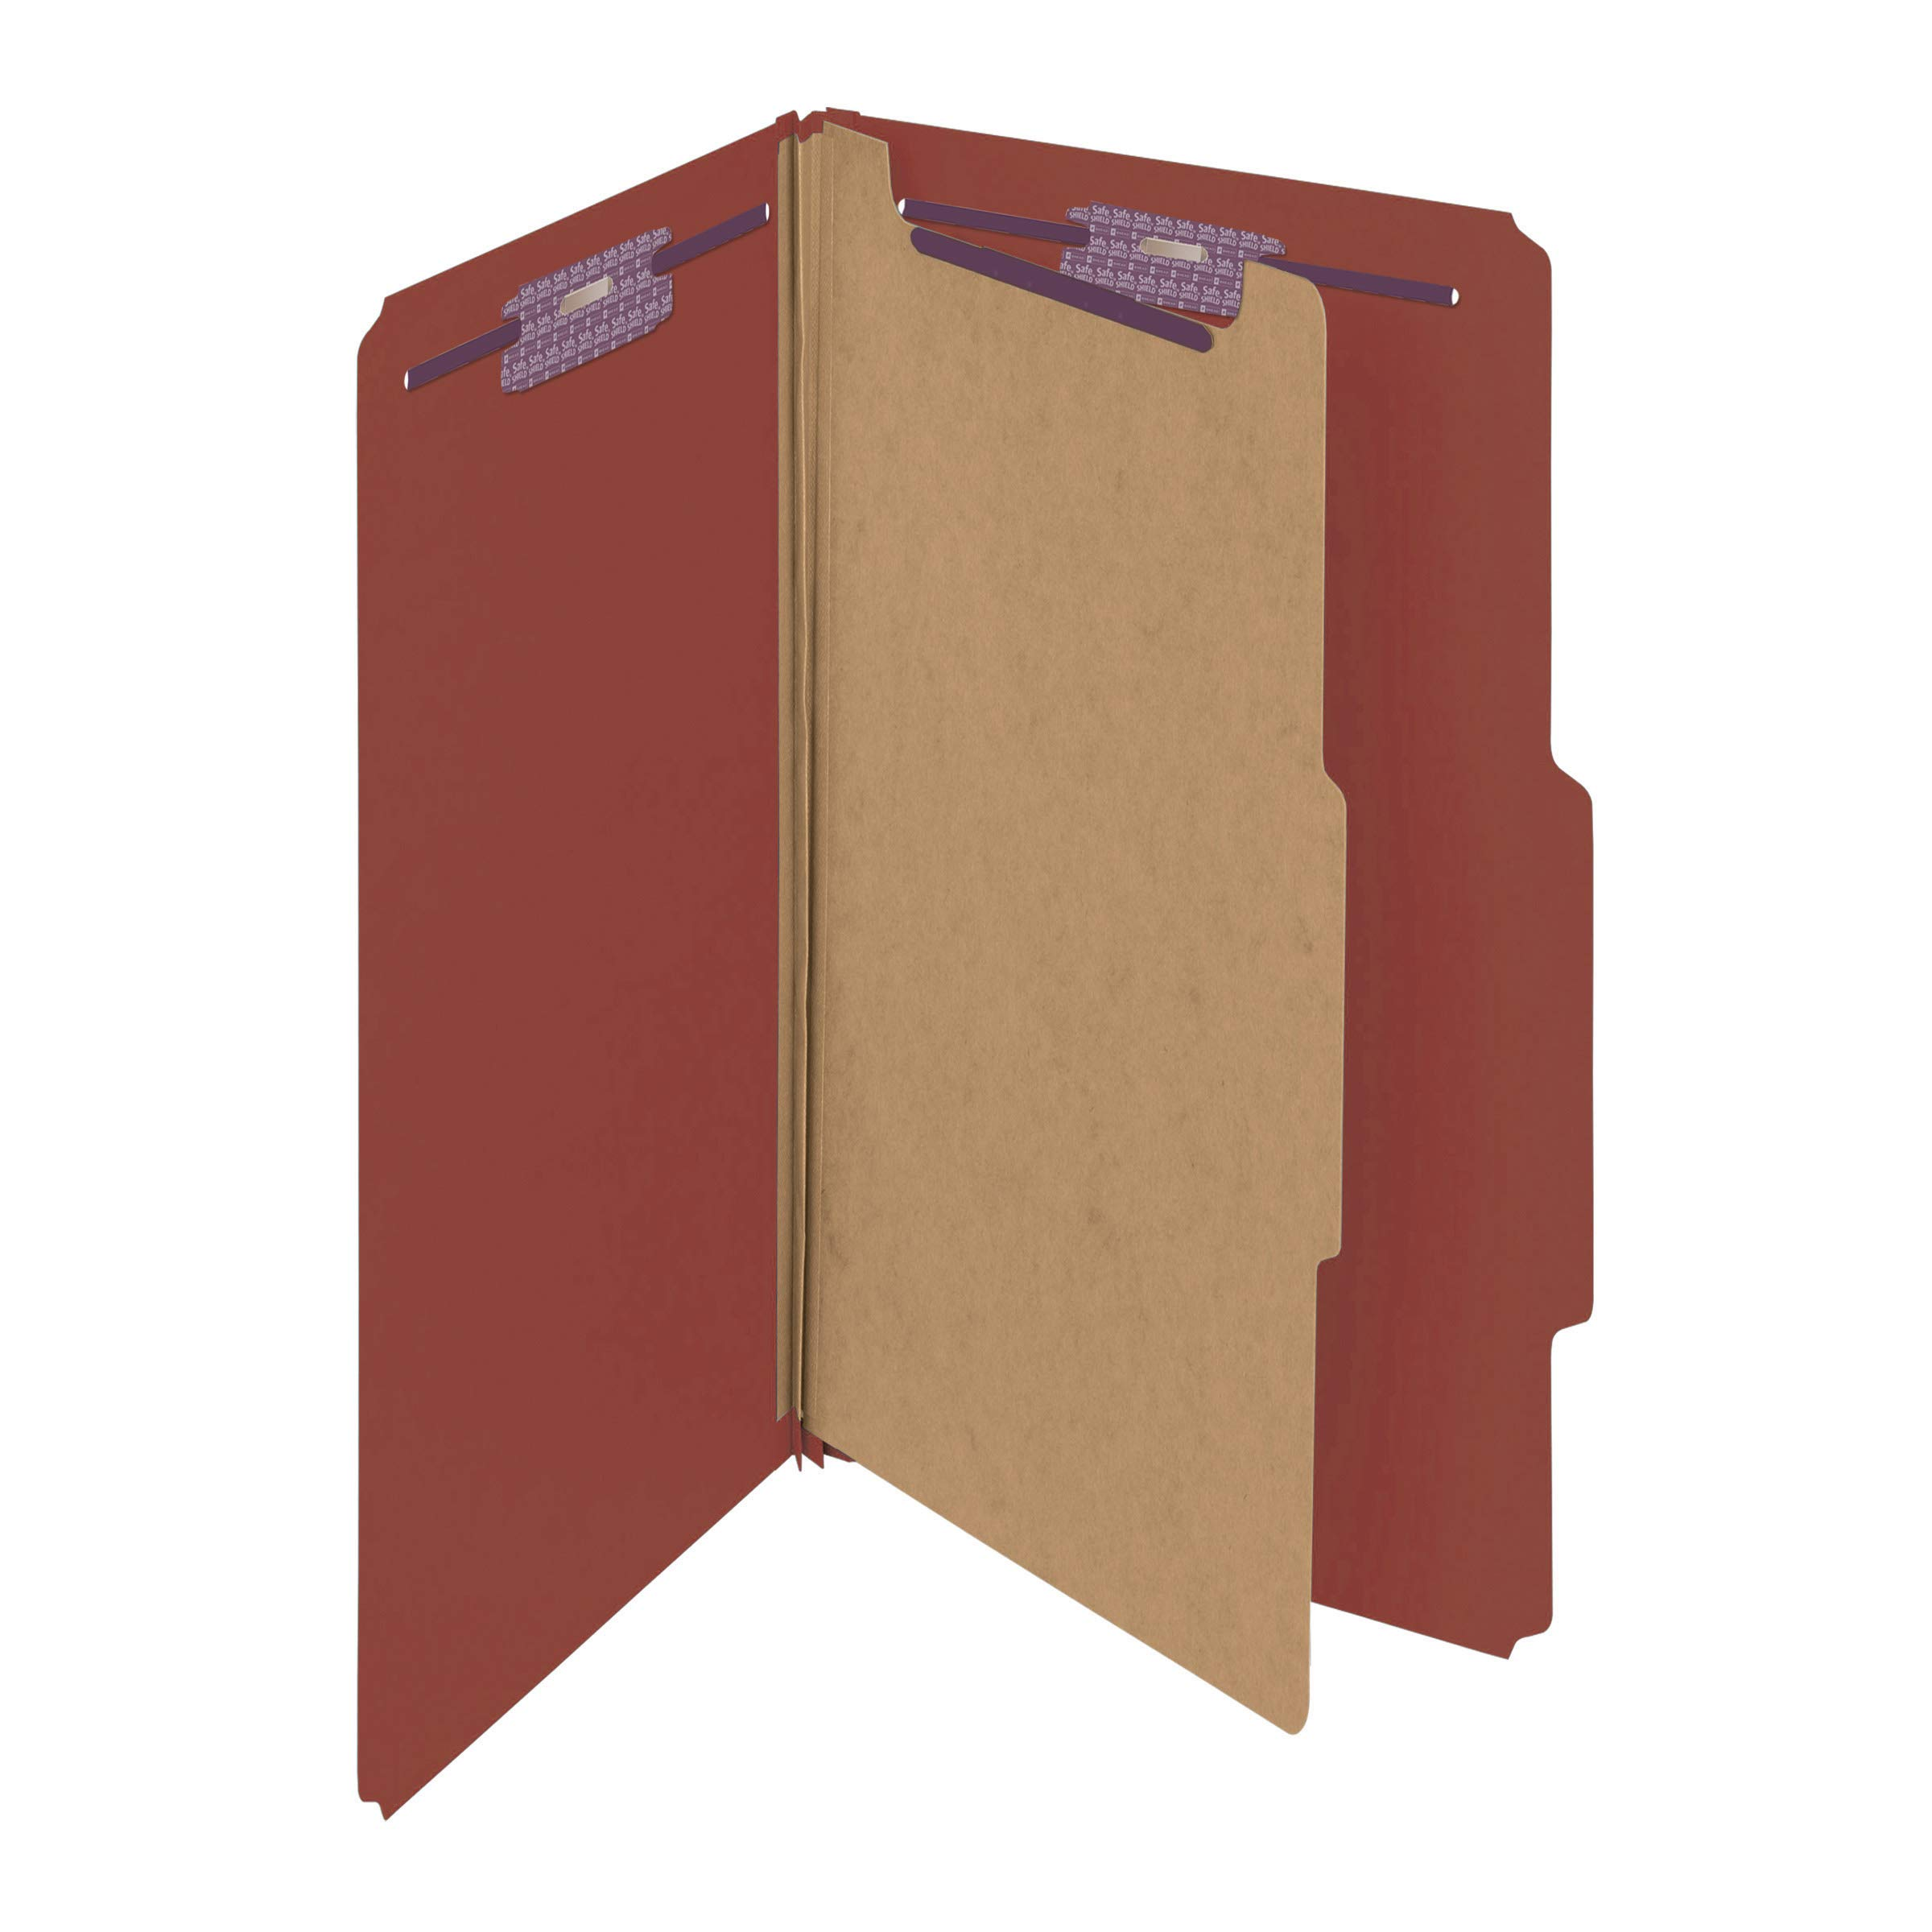 Smead Pressboard Classification File Folder with SafeSHIELD Fasteners, 1 Divider, 2'' Expansion, Legal Size, Red, 10 per Box (18775) by Smead